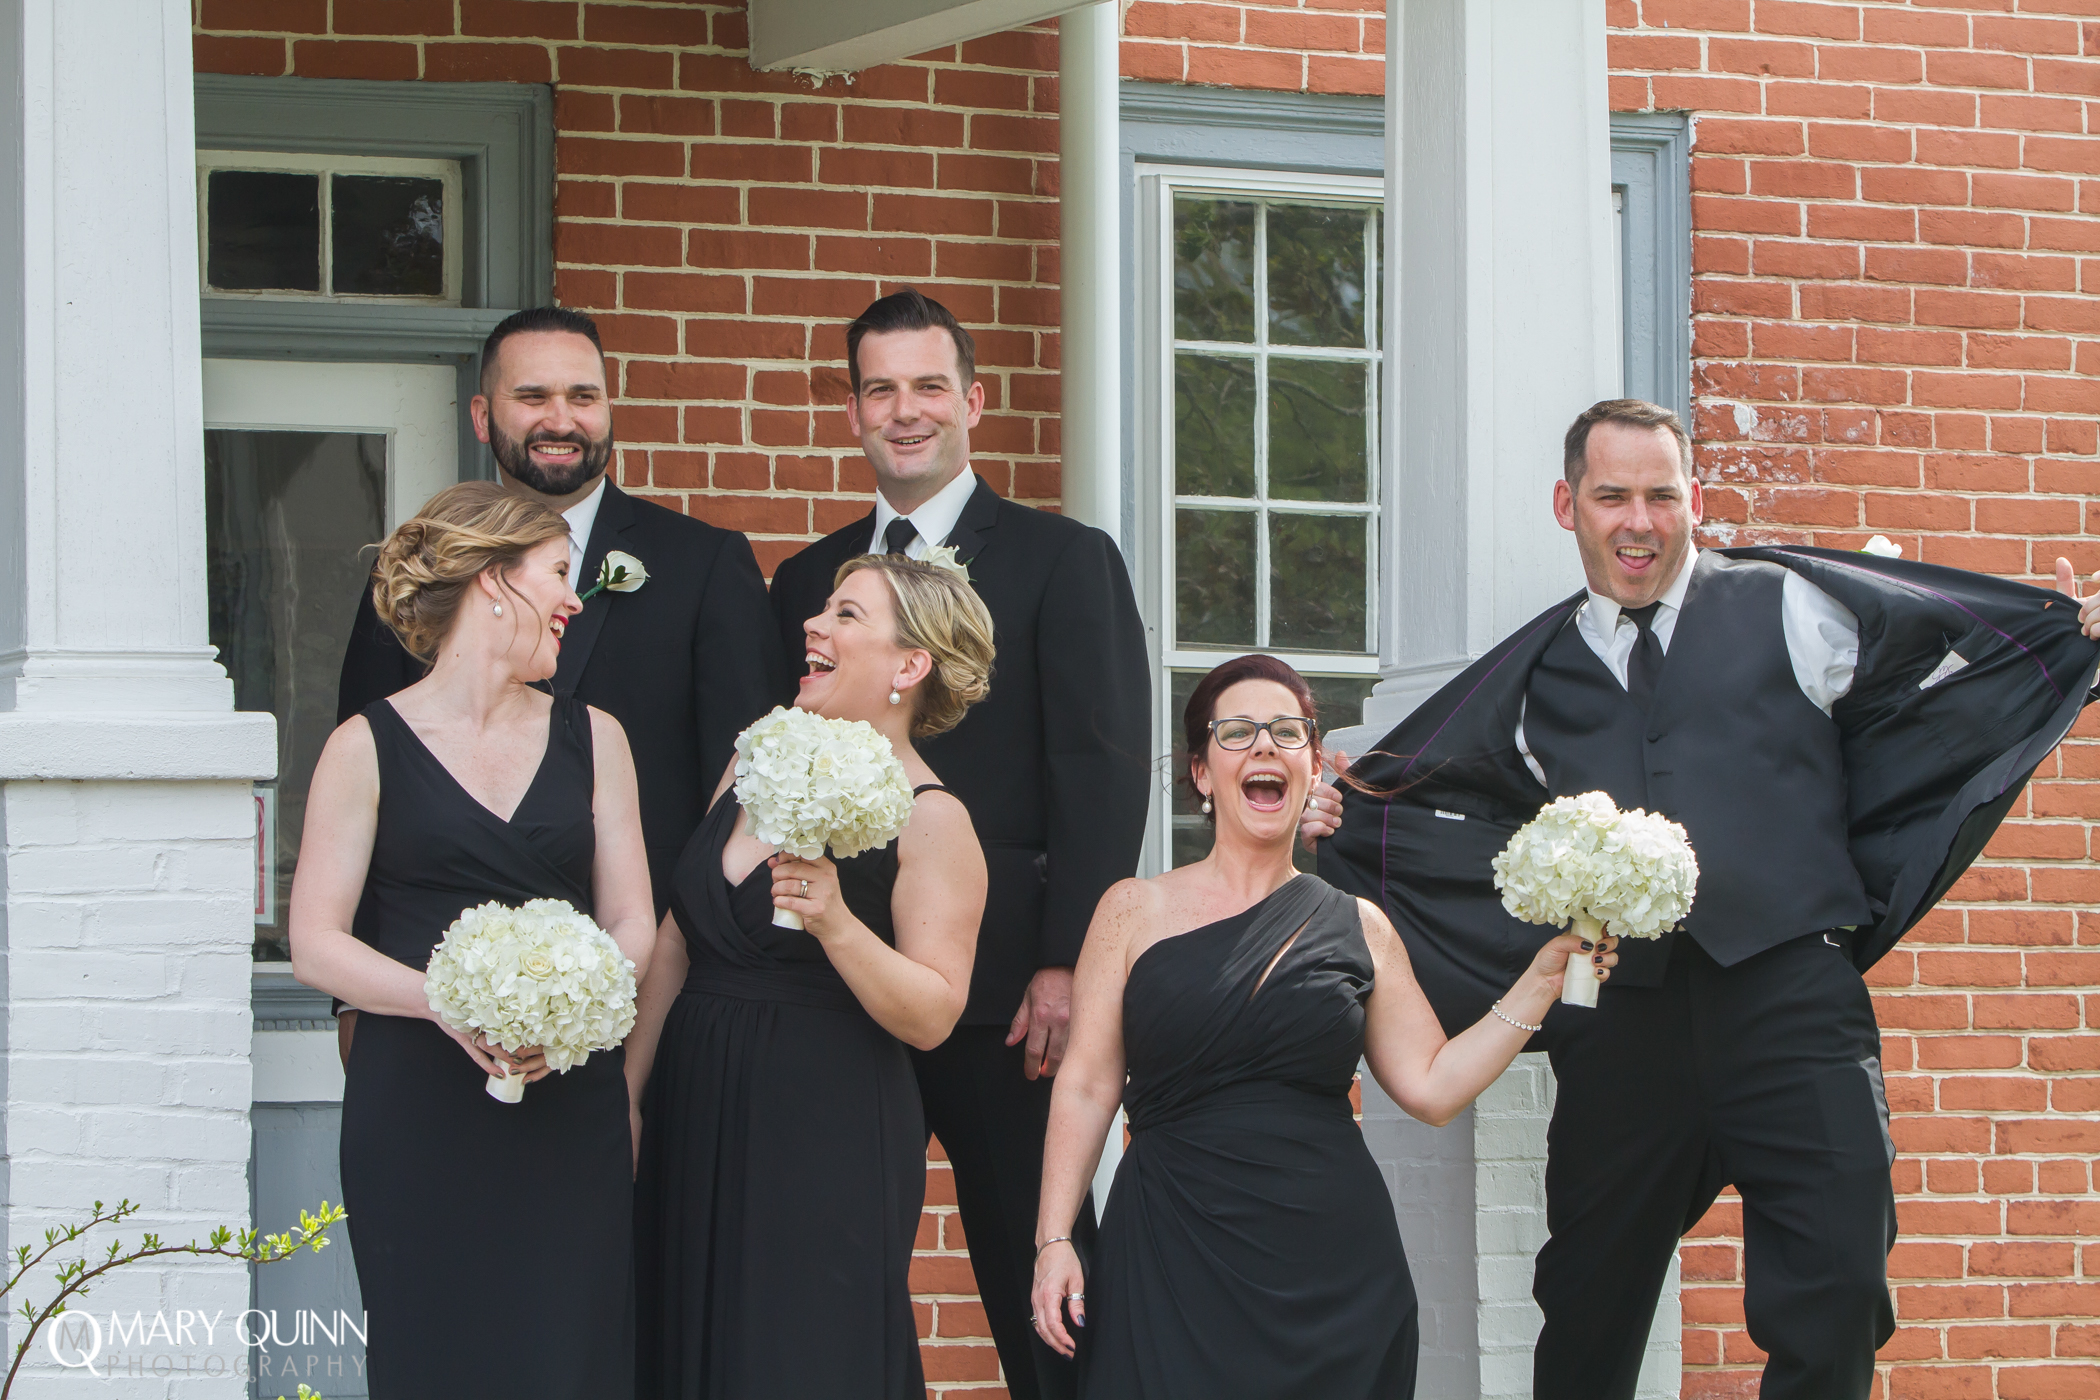 Fun Wedding Photographer in Marlton New Jersey